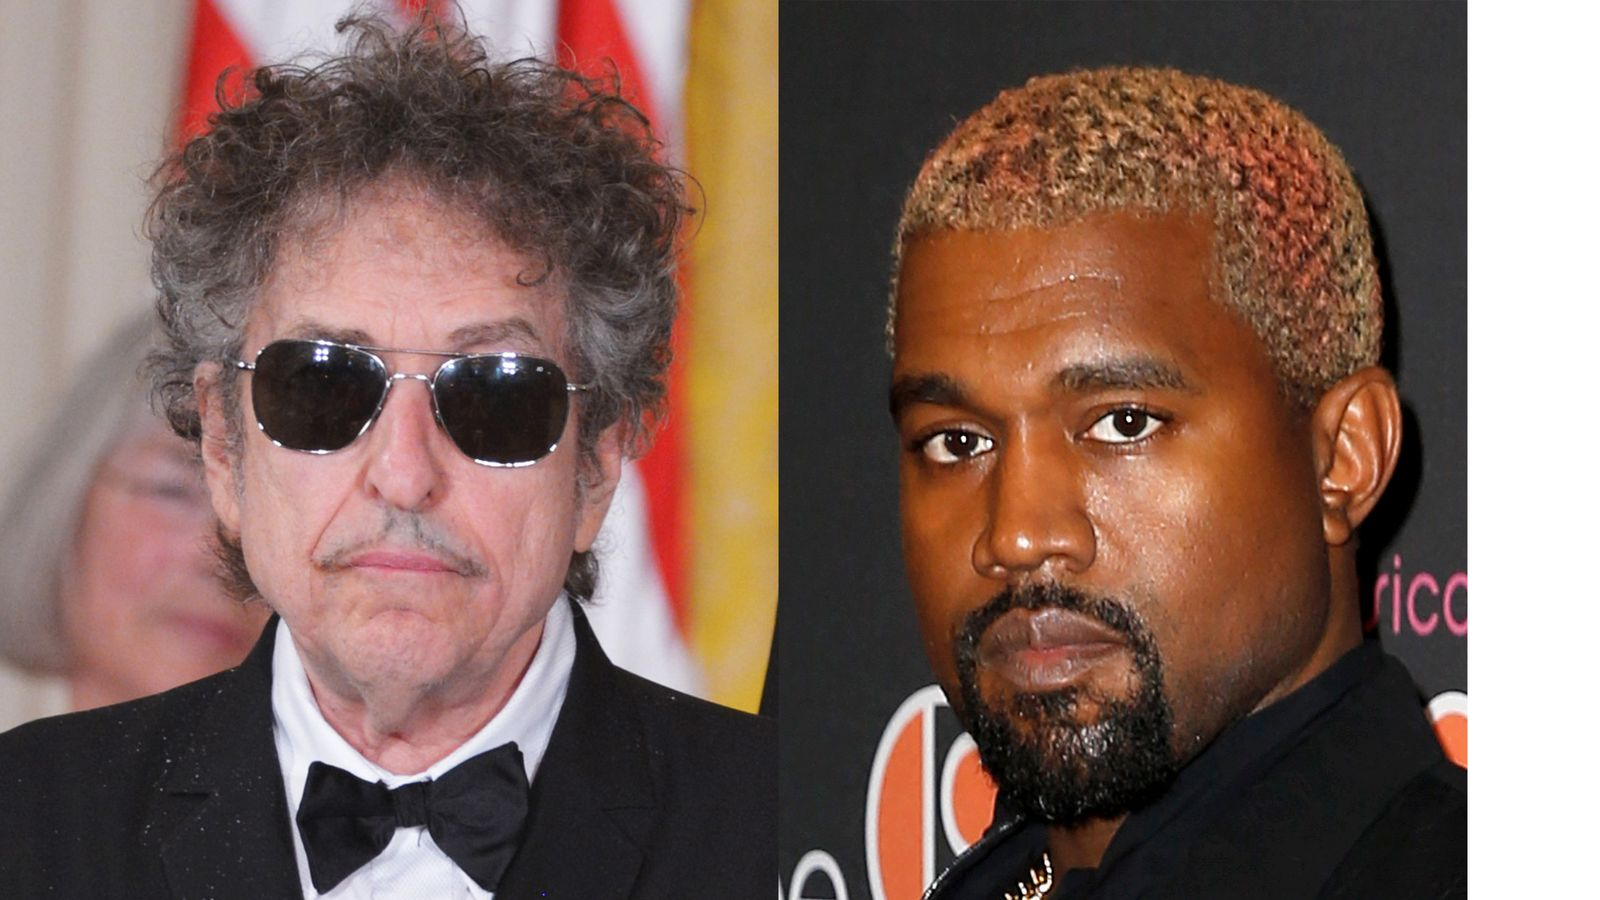 Kanye knock-knock-knockin' on Bob Dylan's door